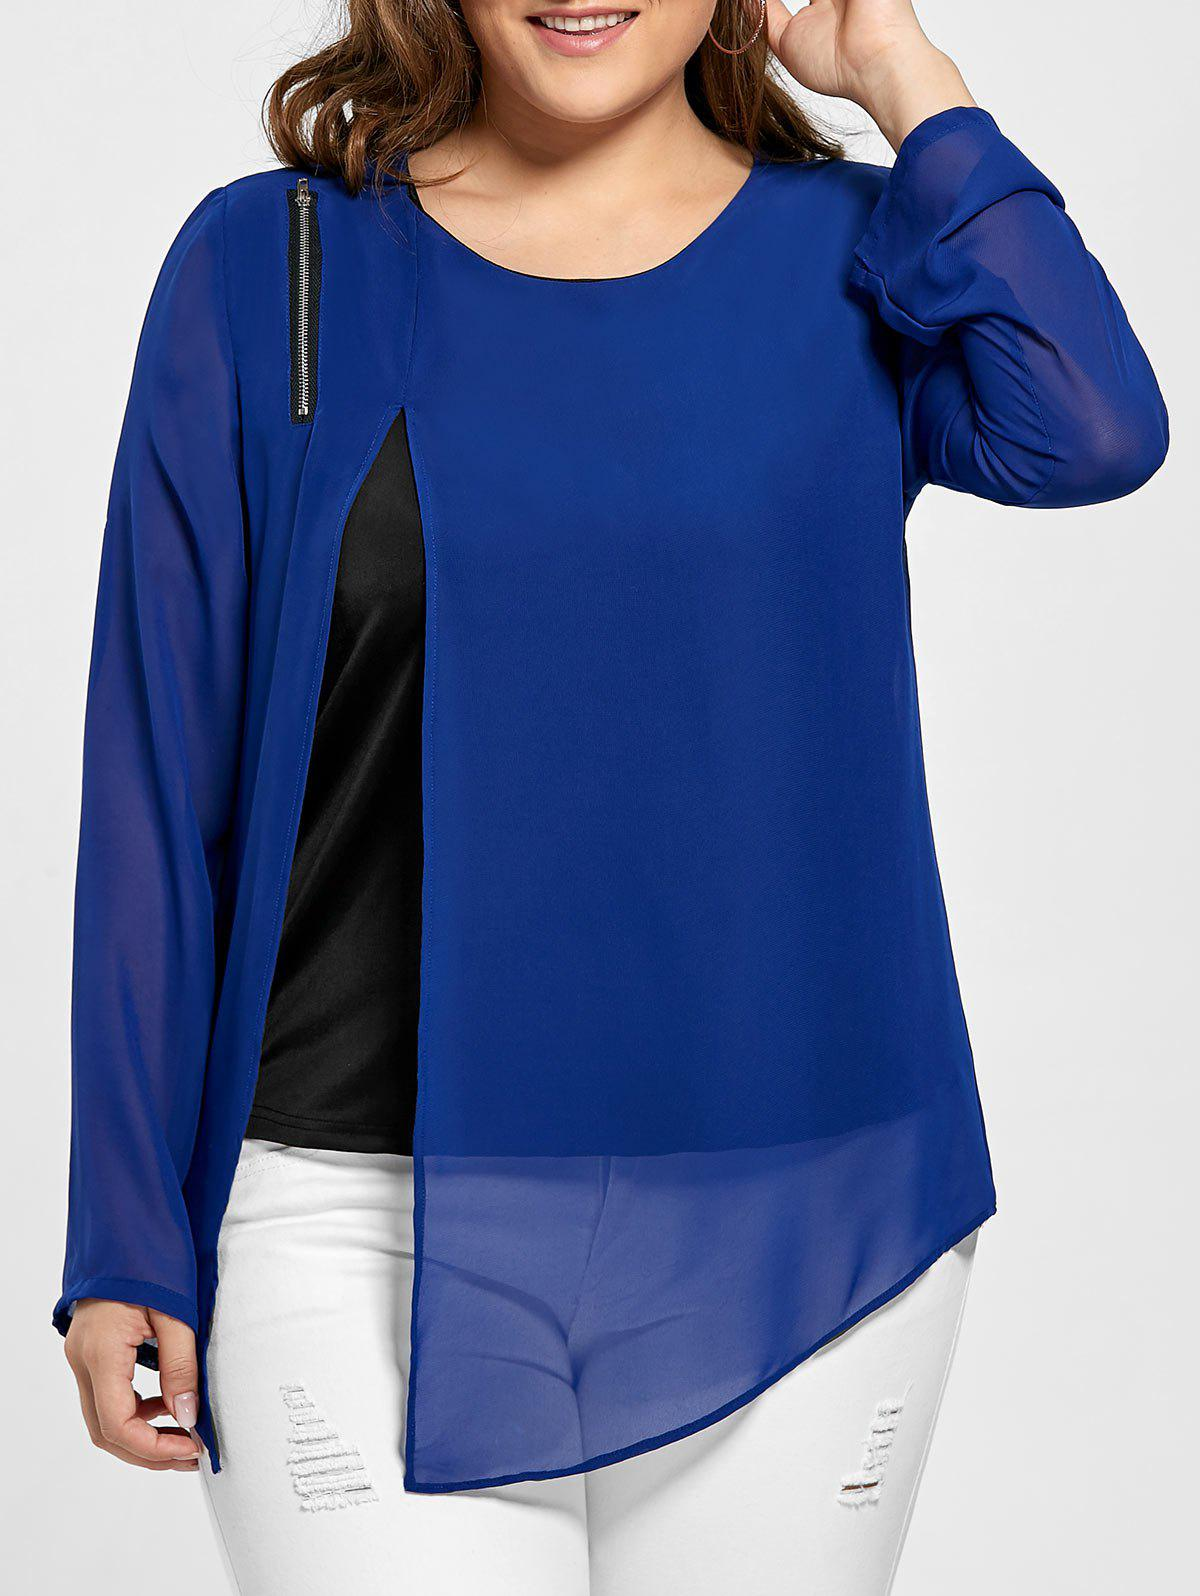 Plus Size Slit Asymmetrical Zip Embellished BlouseWOMEN<br><br>Size: 2XL; Color: BLUE; Material: Polyester; Shirt Length: Regular; Sleeve Length: Full; Collar: Round Neck; Style: Fashion; Season: Fall; Embellishment: Zippers; Pattern Type: Others; Weight: 0.2900kg; Package Contents: 1 x Blouse;